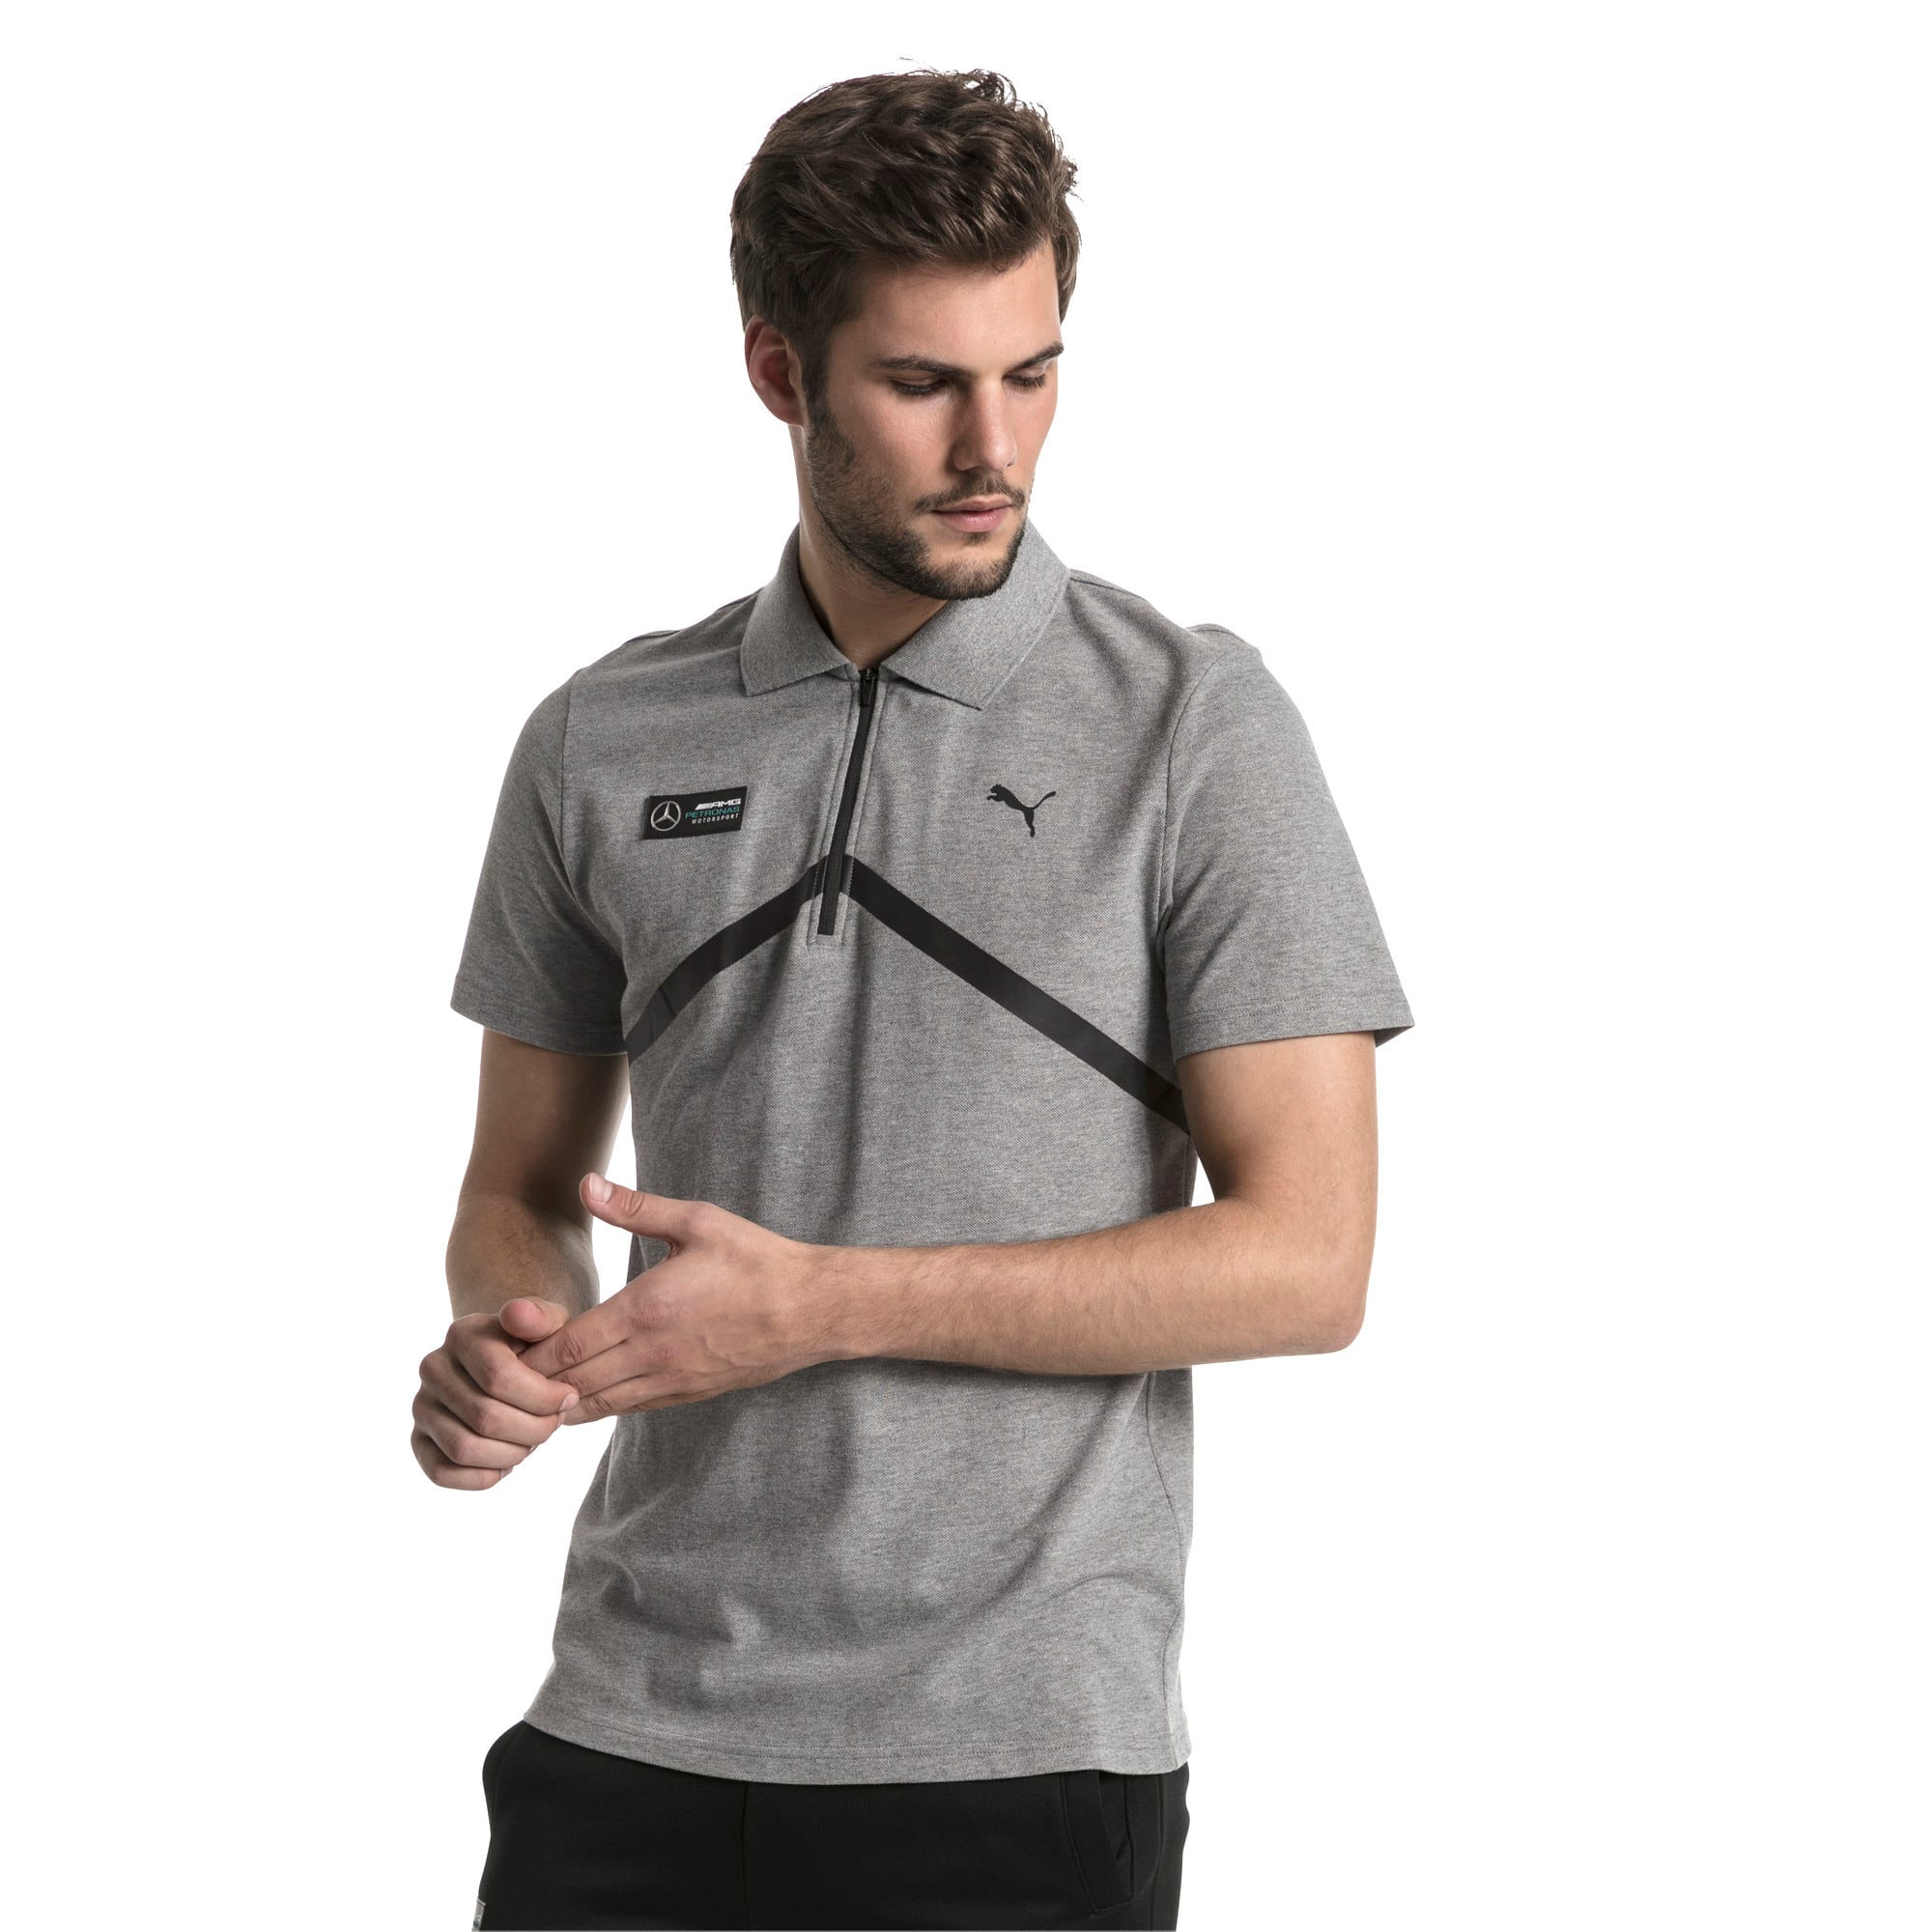 Thumbnail 2 of MERCEDES AMG PETRONAS Men's Polo, Medium Gray Heather, medium